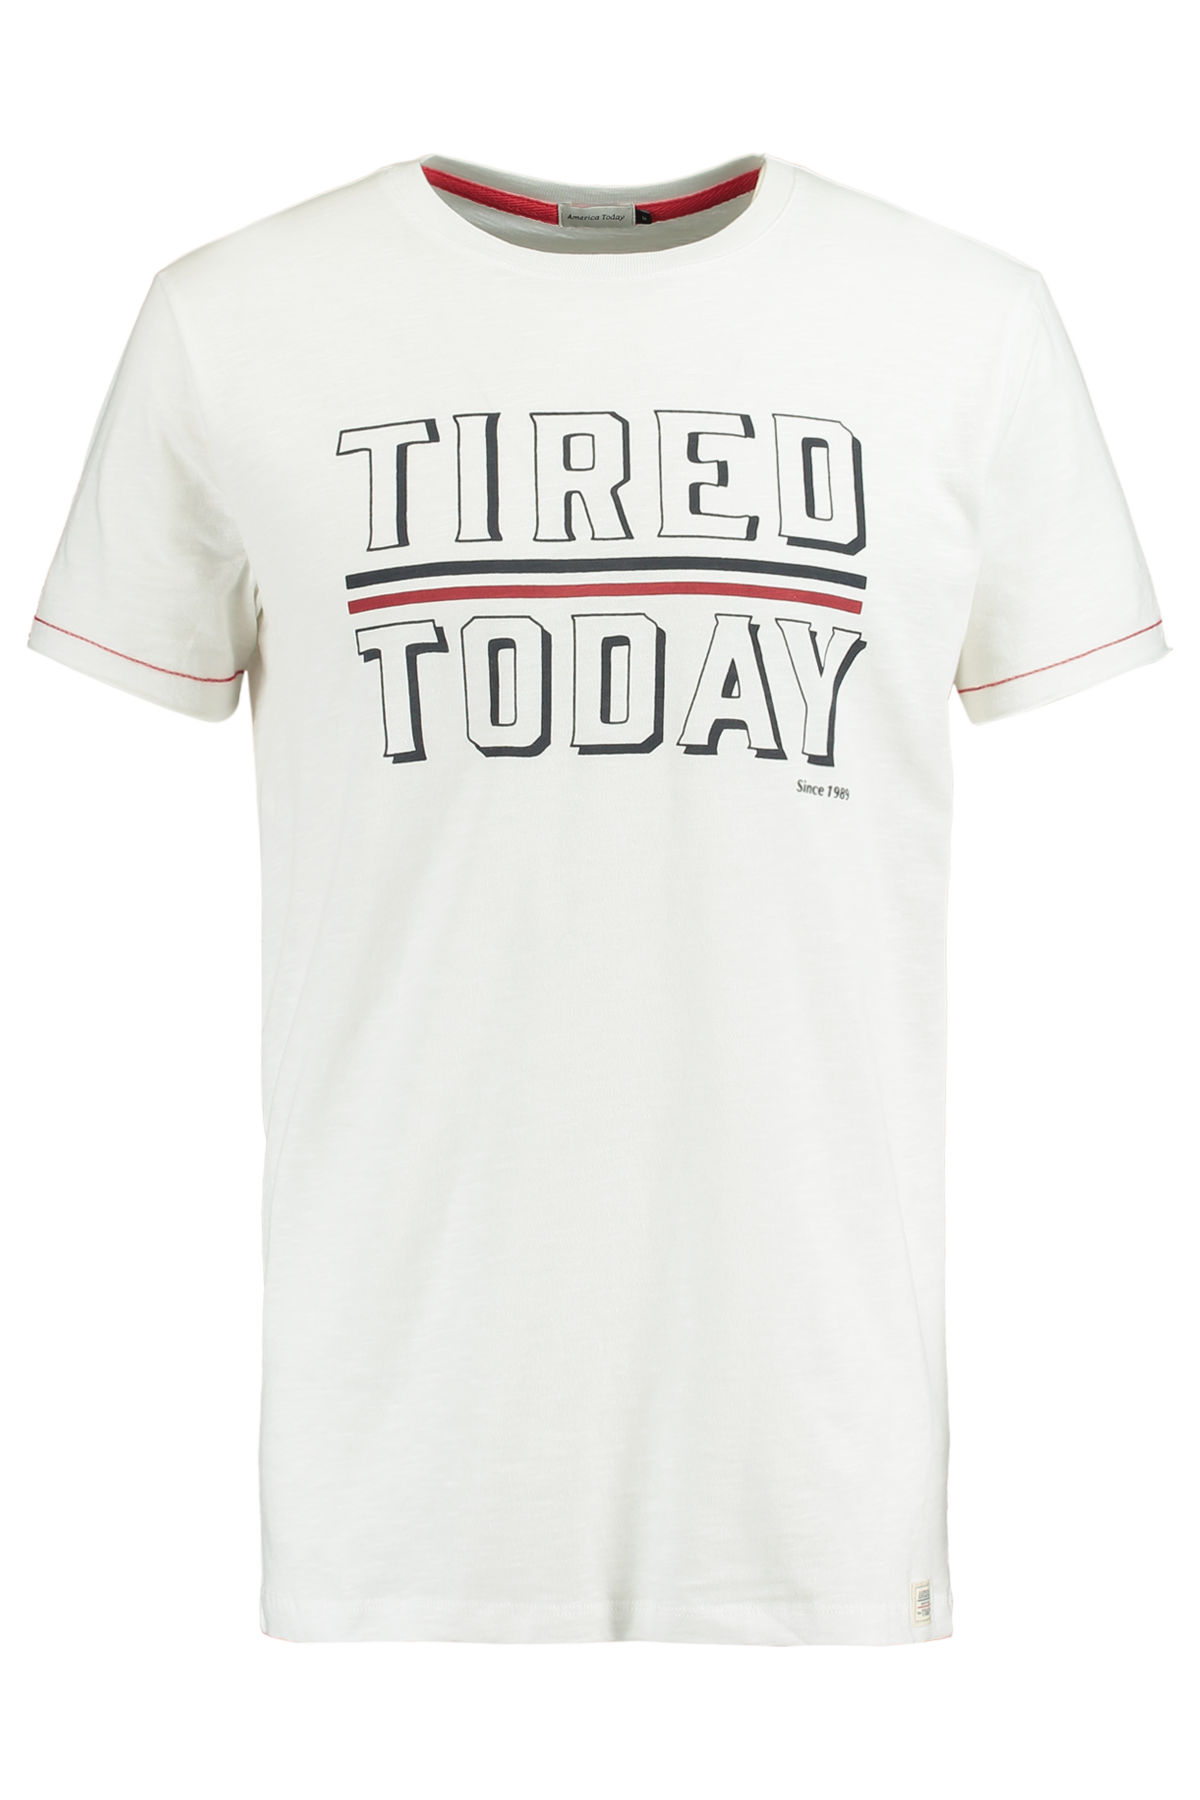 T-shirt Leon tired today